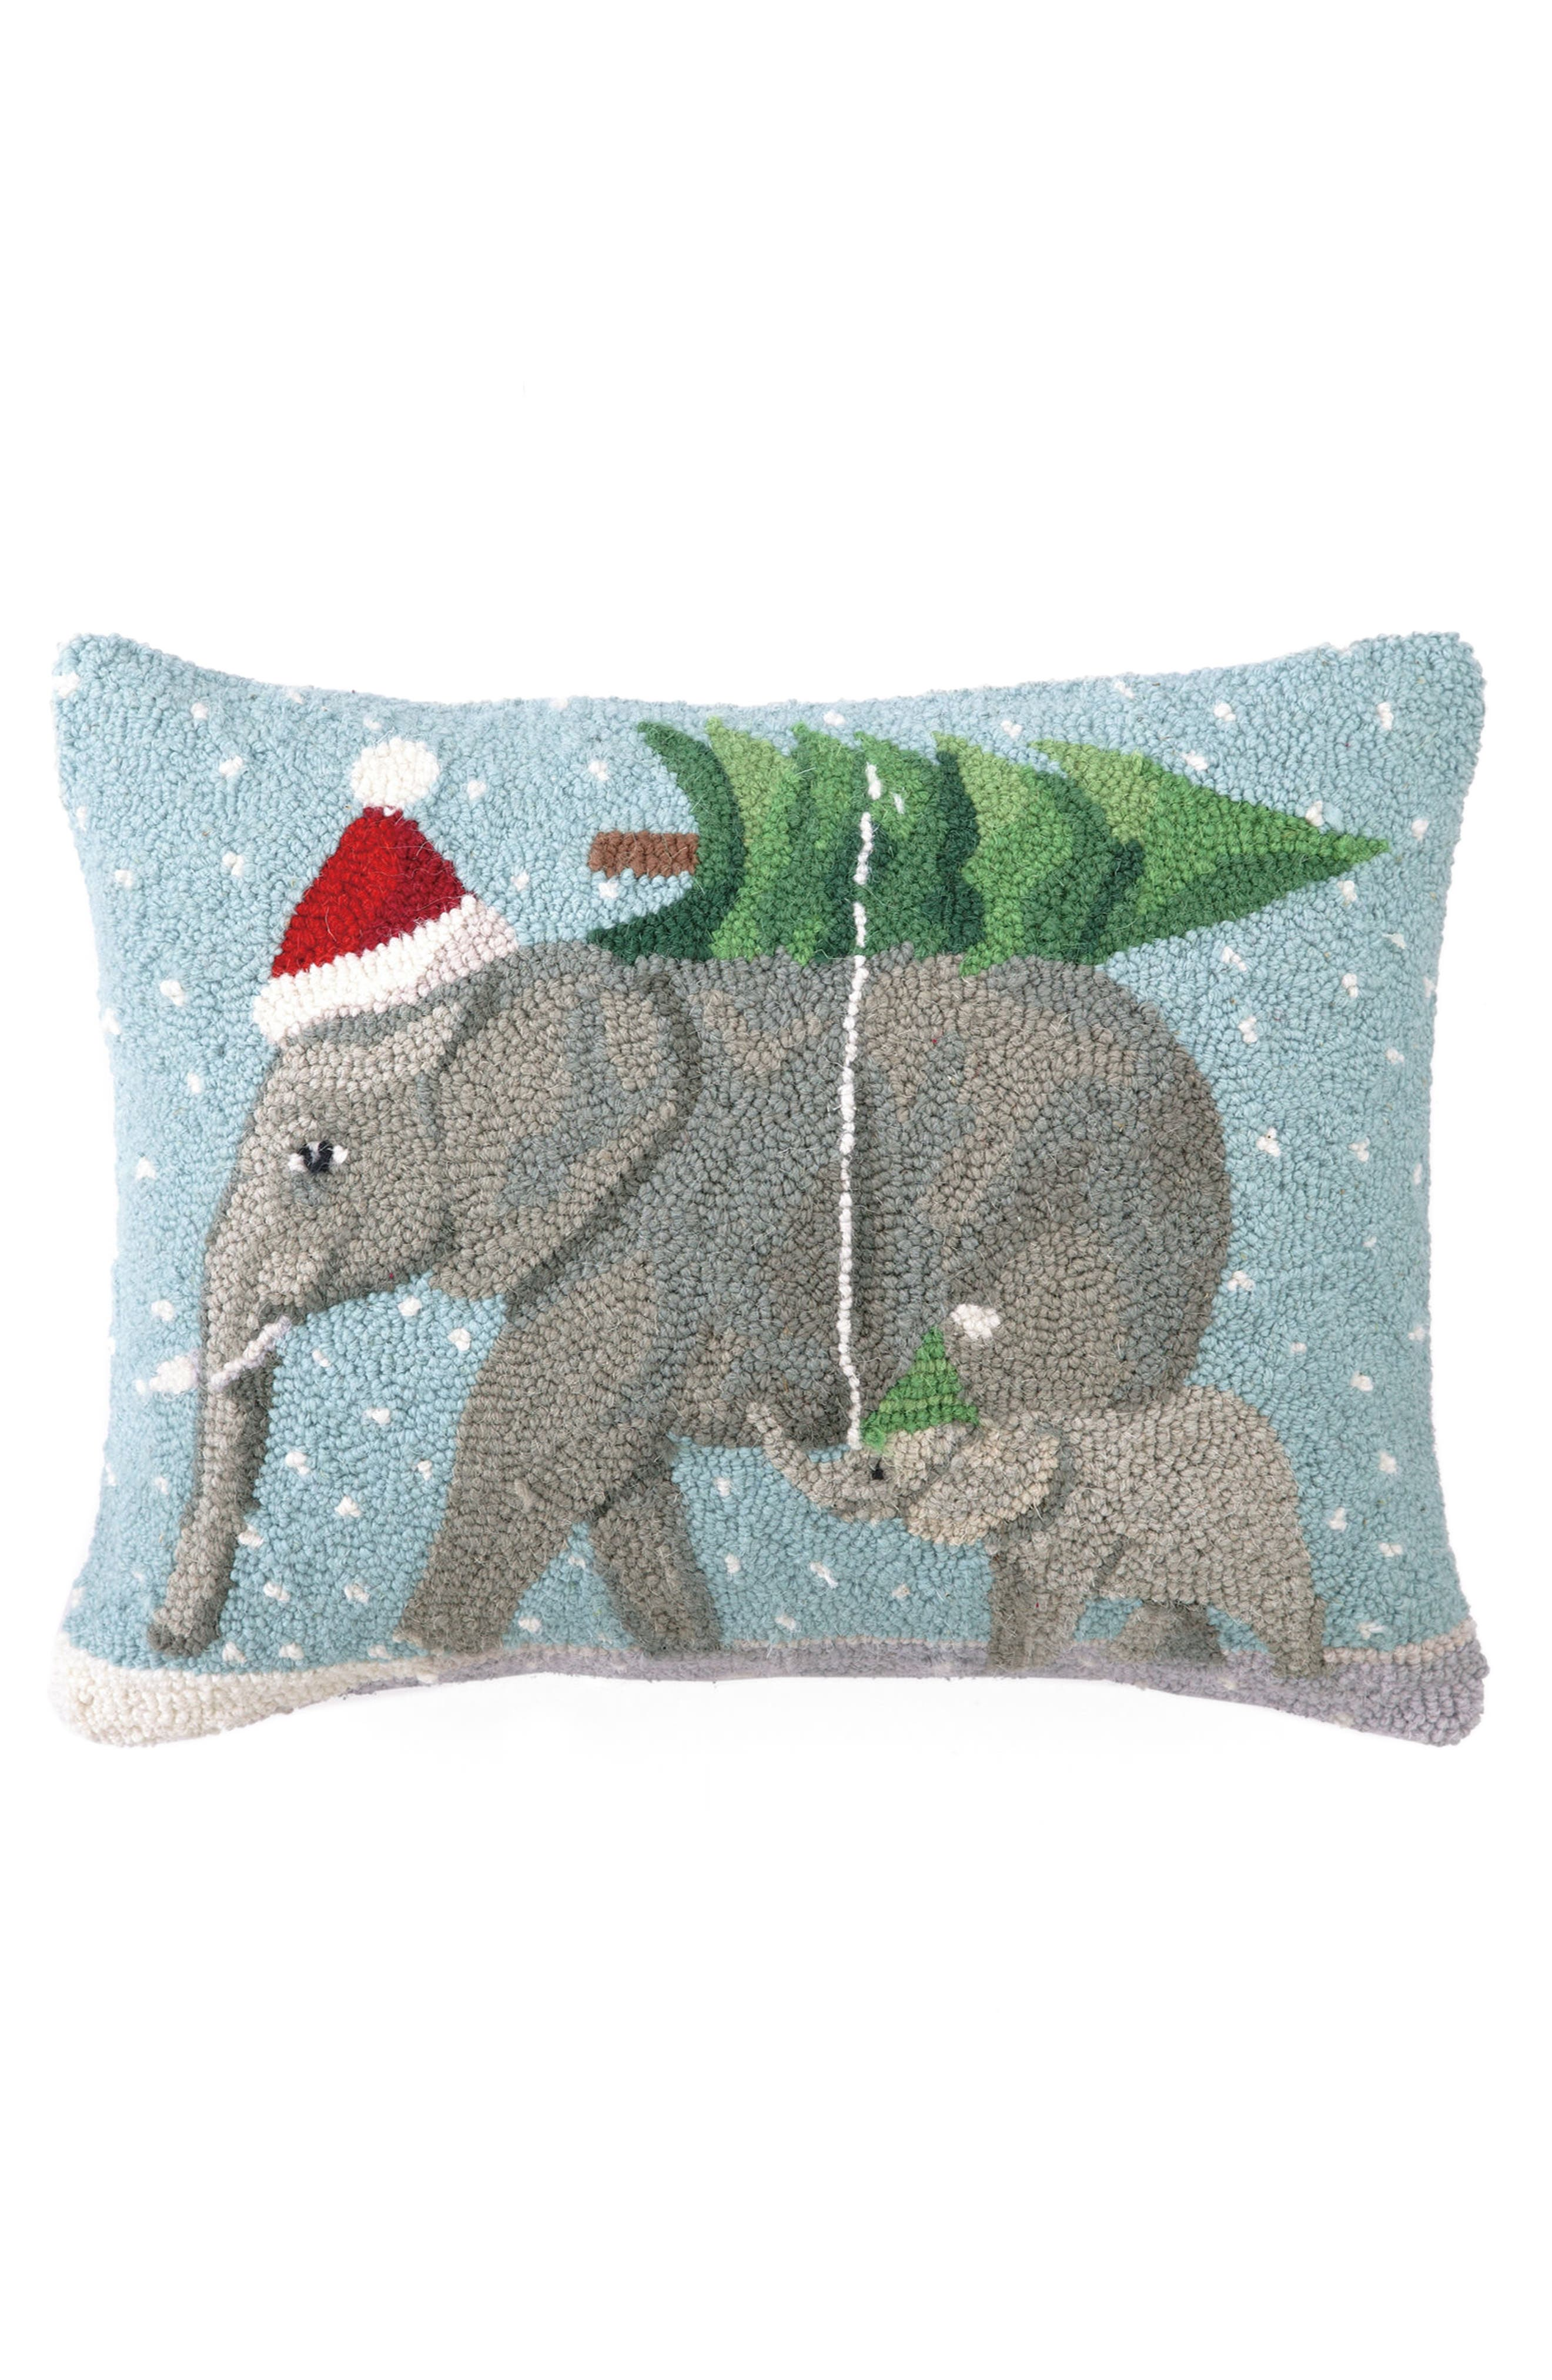 Christmas Elephants Hooked Accent Pillow,                             Main thumbnail 1, color,                             400